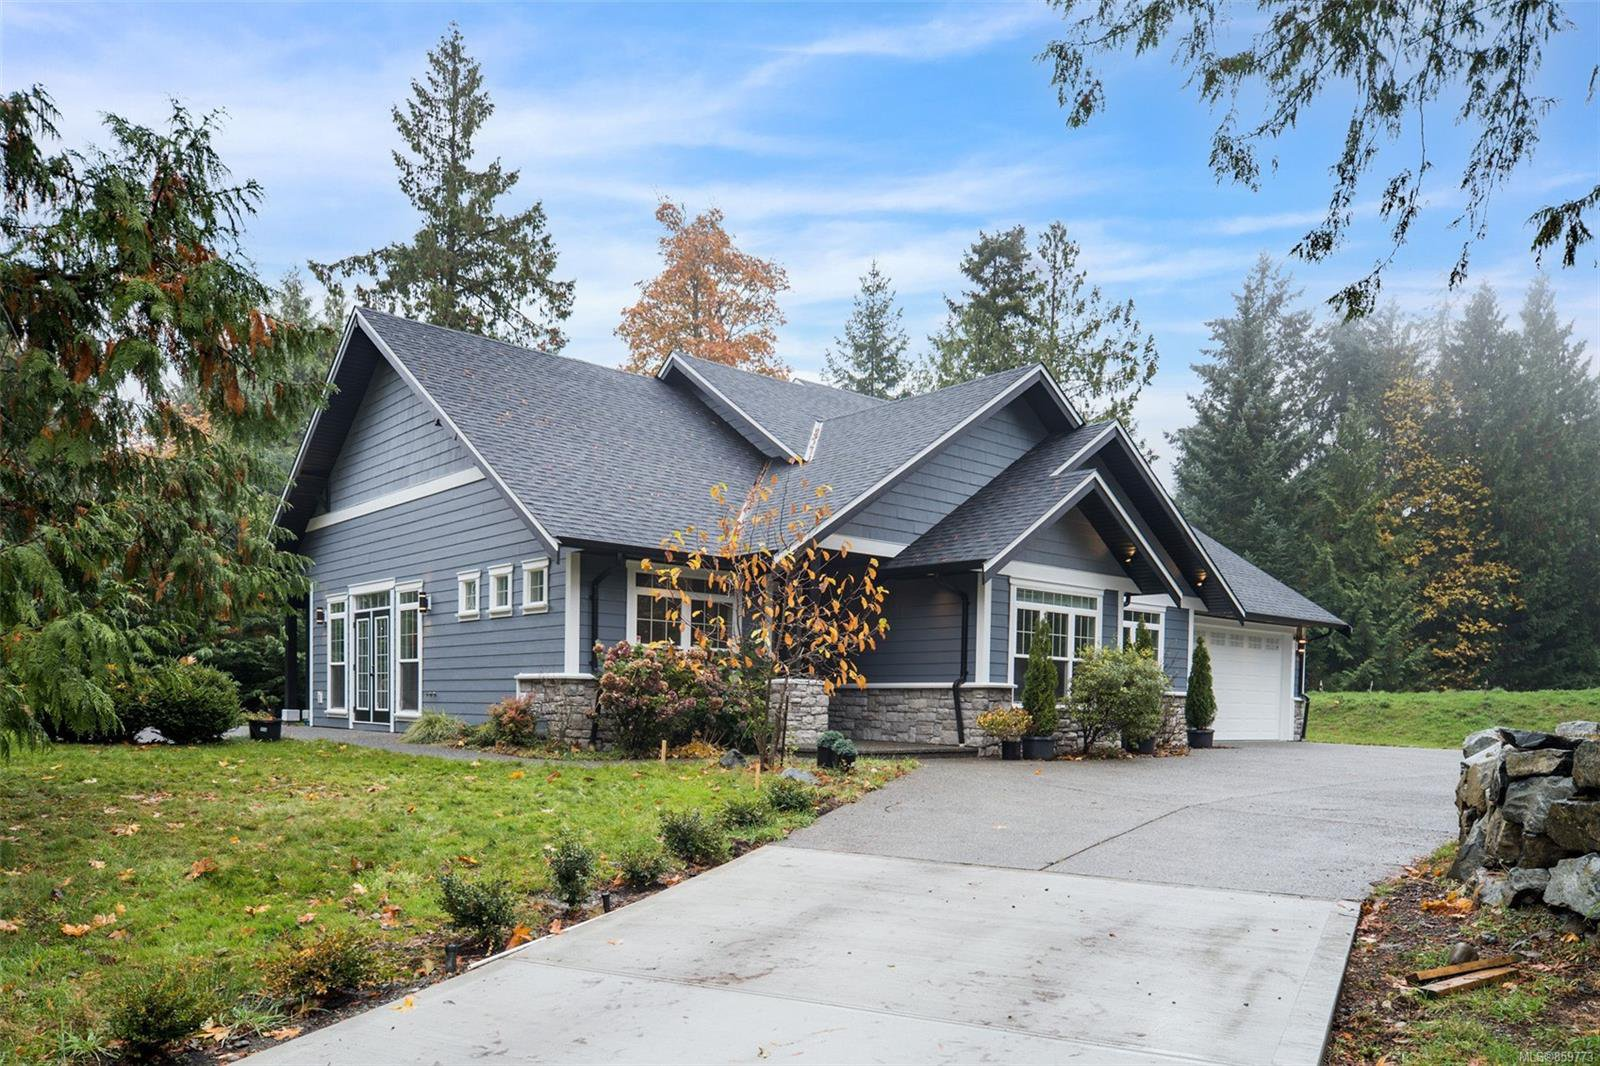 Main Photo: 2622 Treit Rd in : ML Shawnigan House for sale (Malahat & Area)  : MLS®# 859773